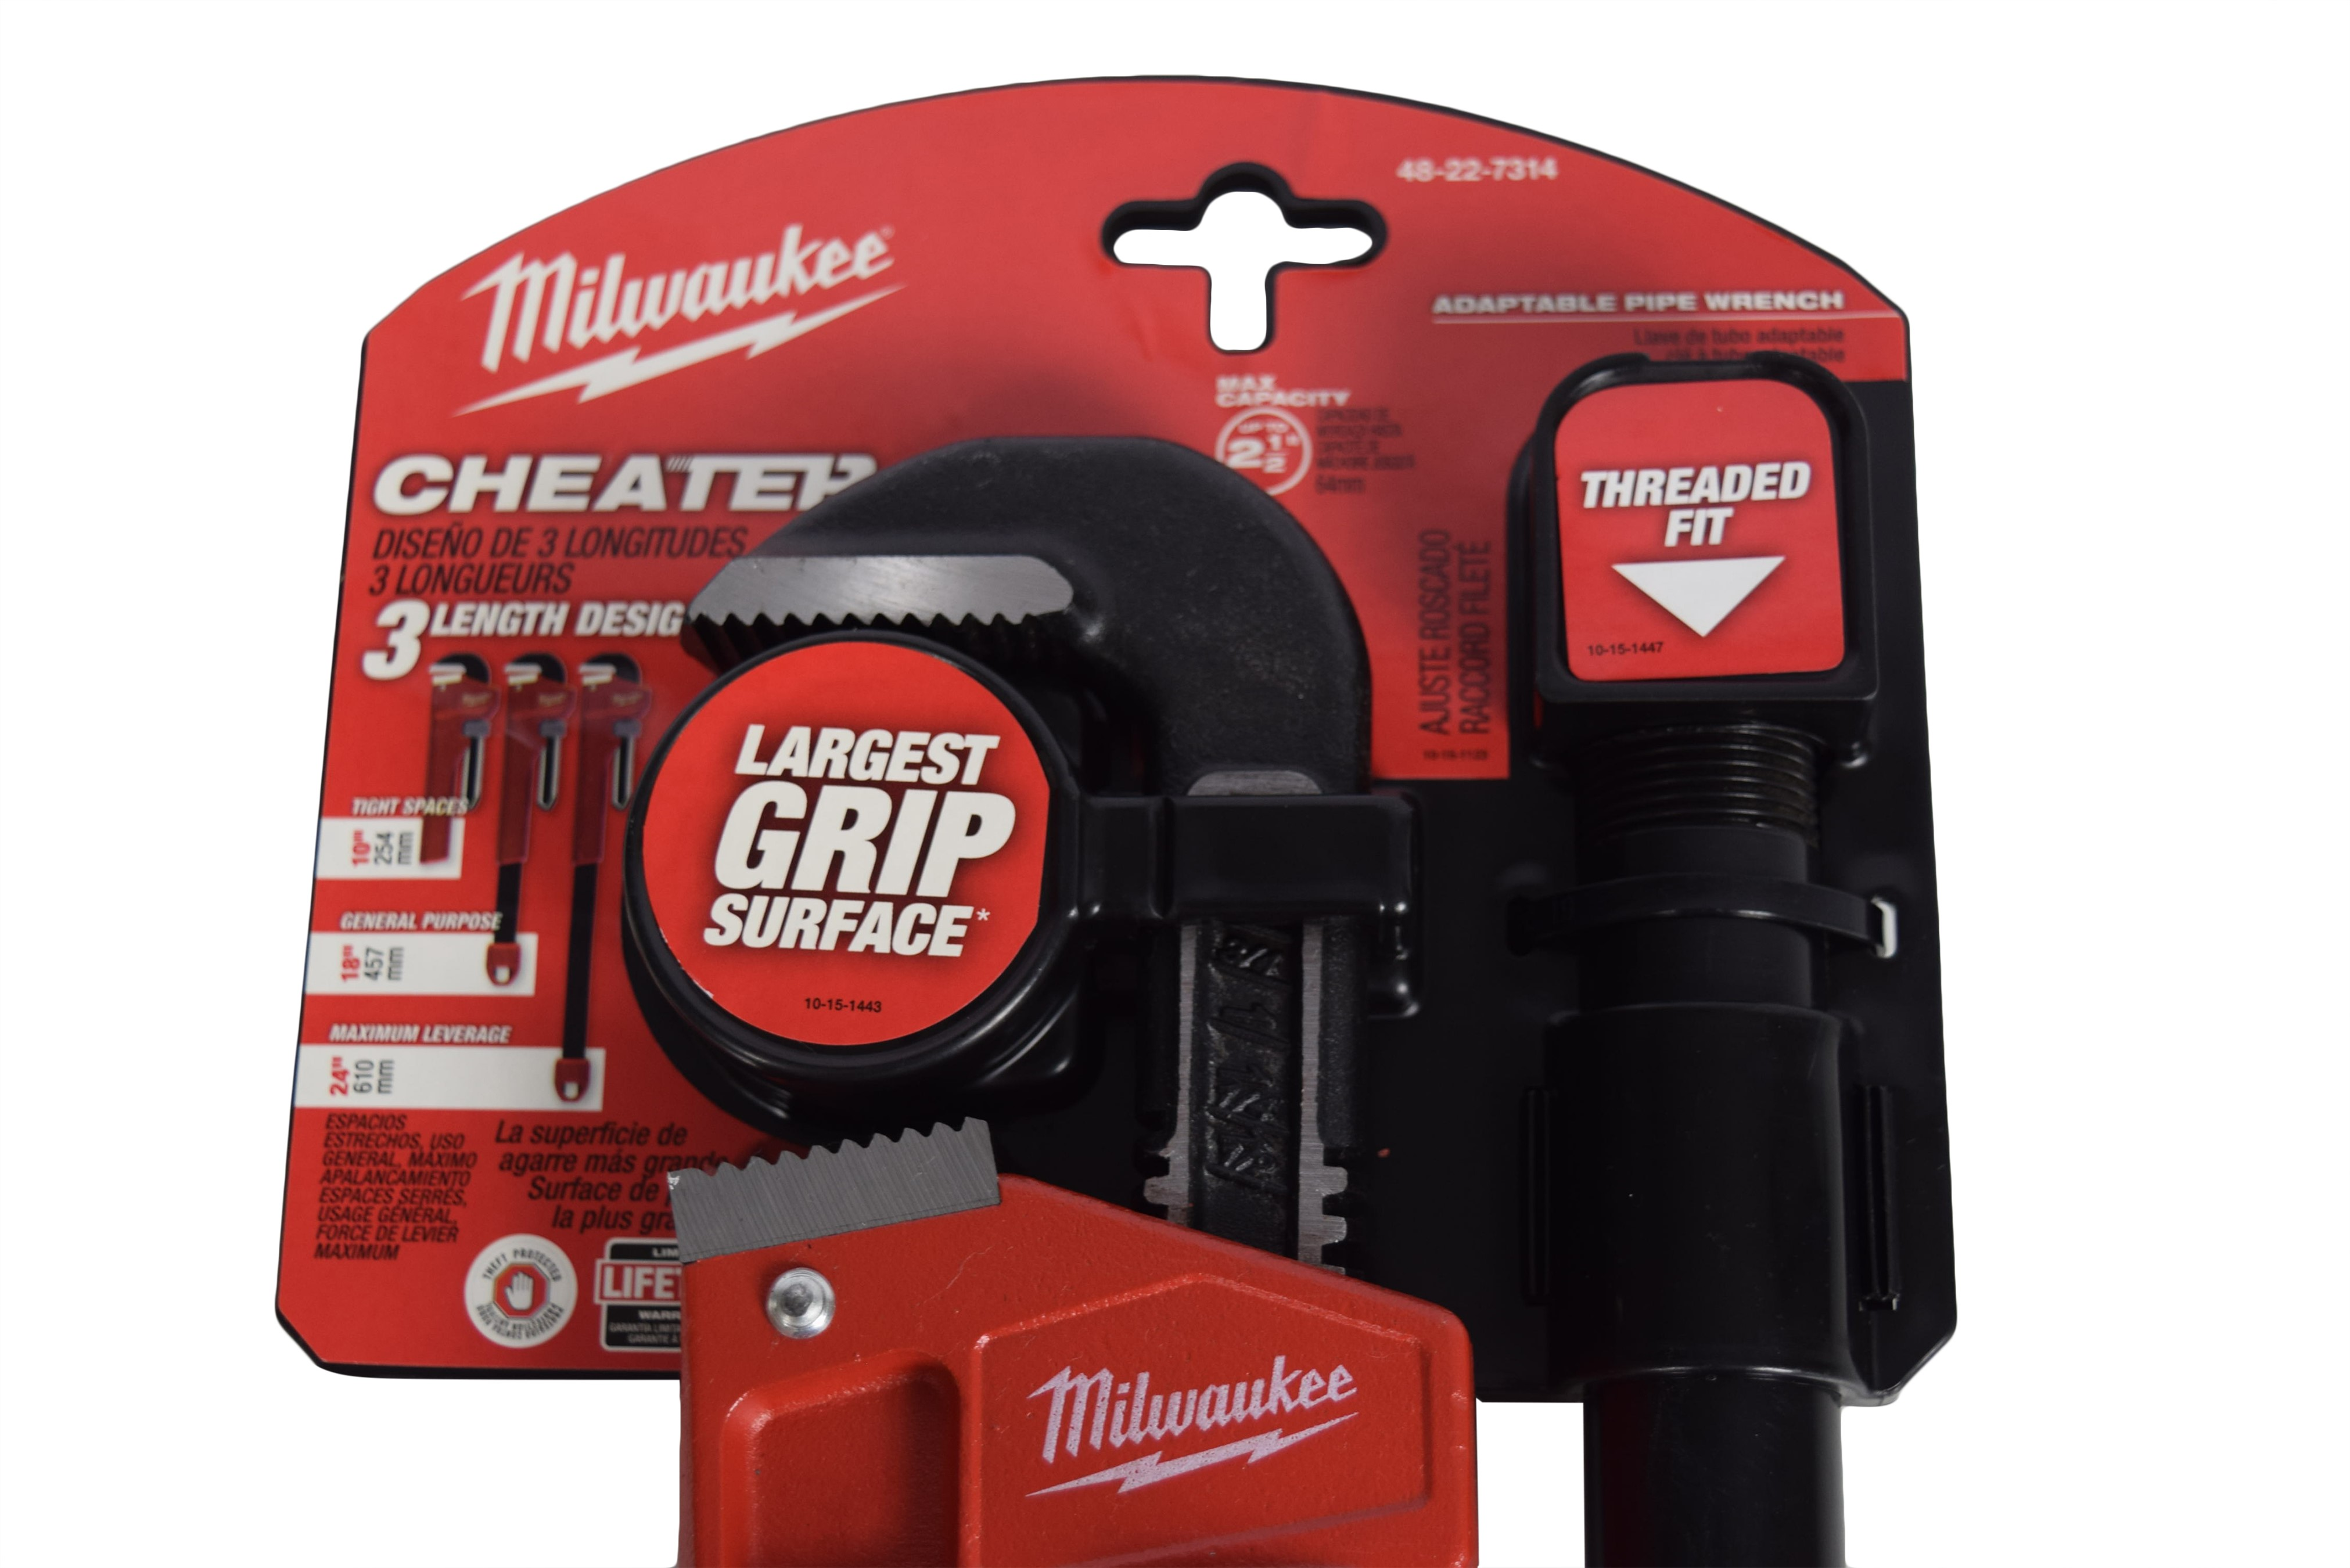 Milwaukee-48-22-7314-Adaptable-Cheater-Pipe-Wrench-image-4